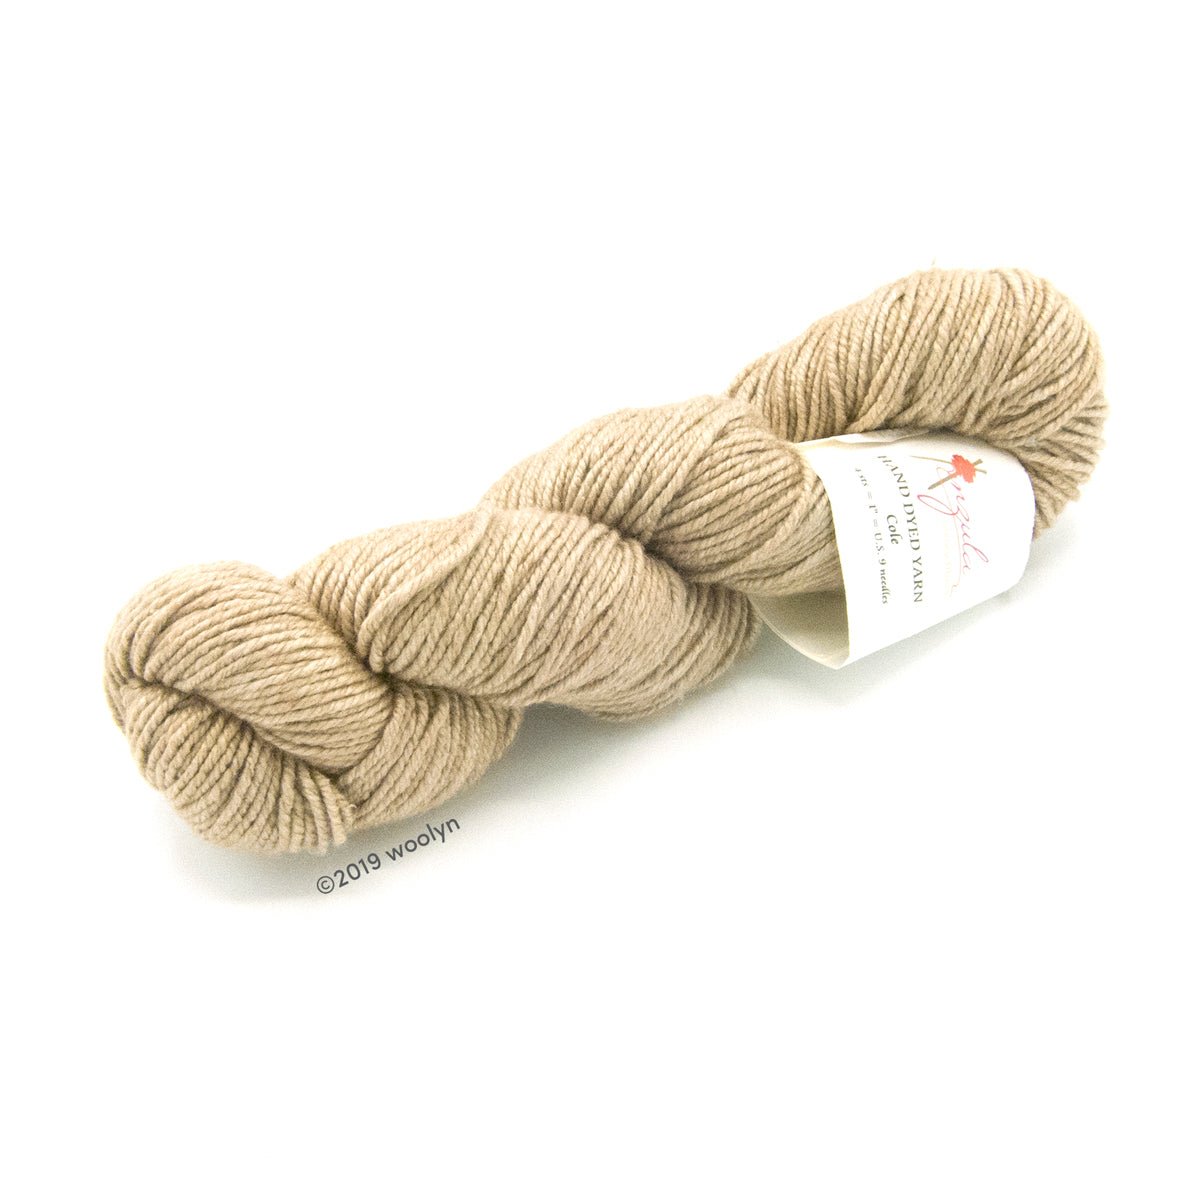 Twisted skein of Anzula Cole yarn in a neutral cream color.